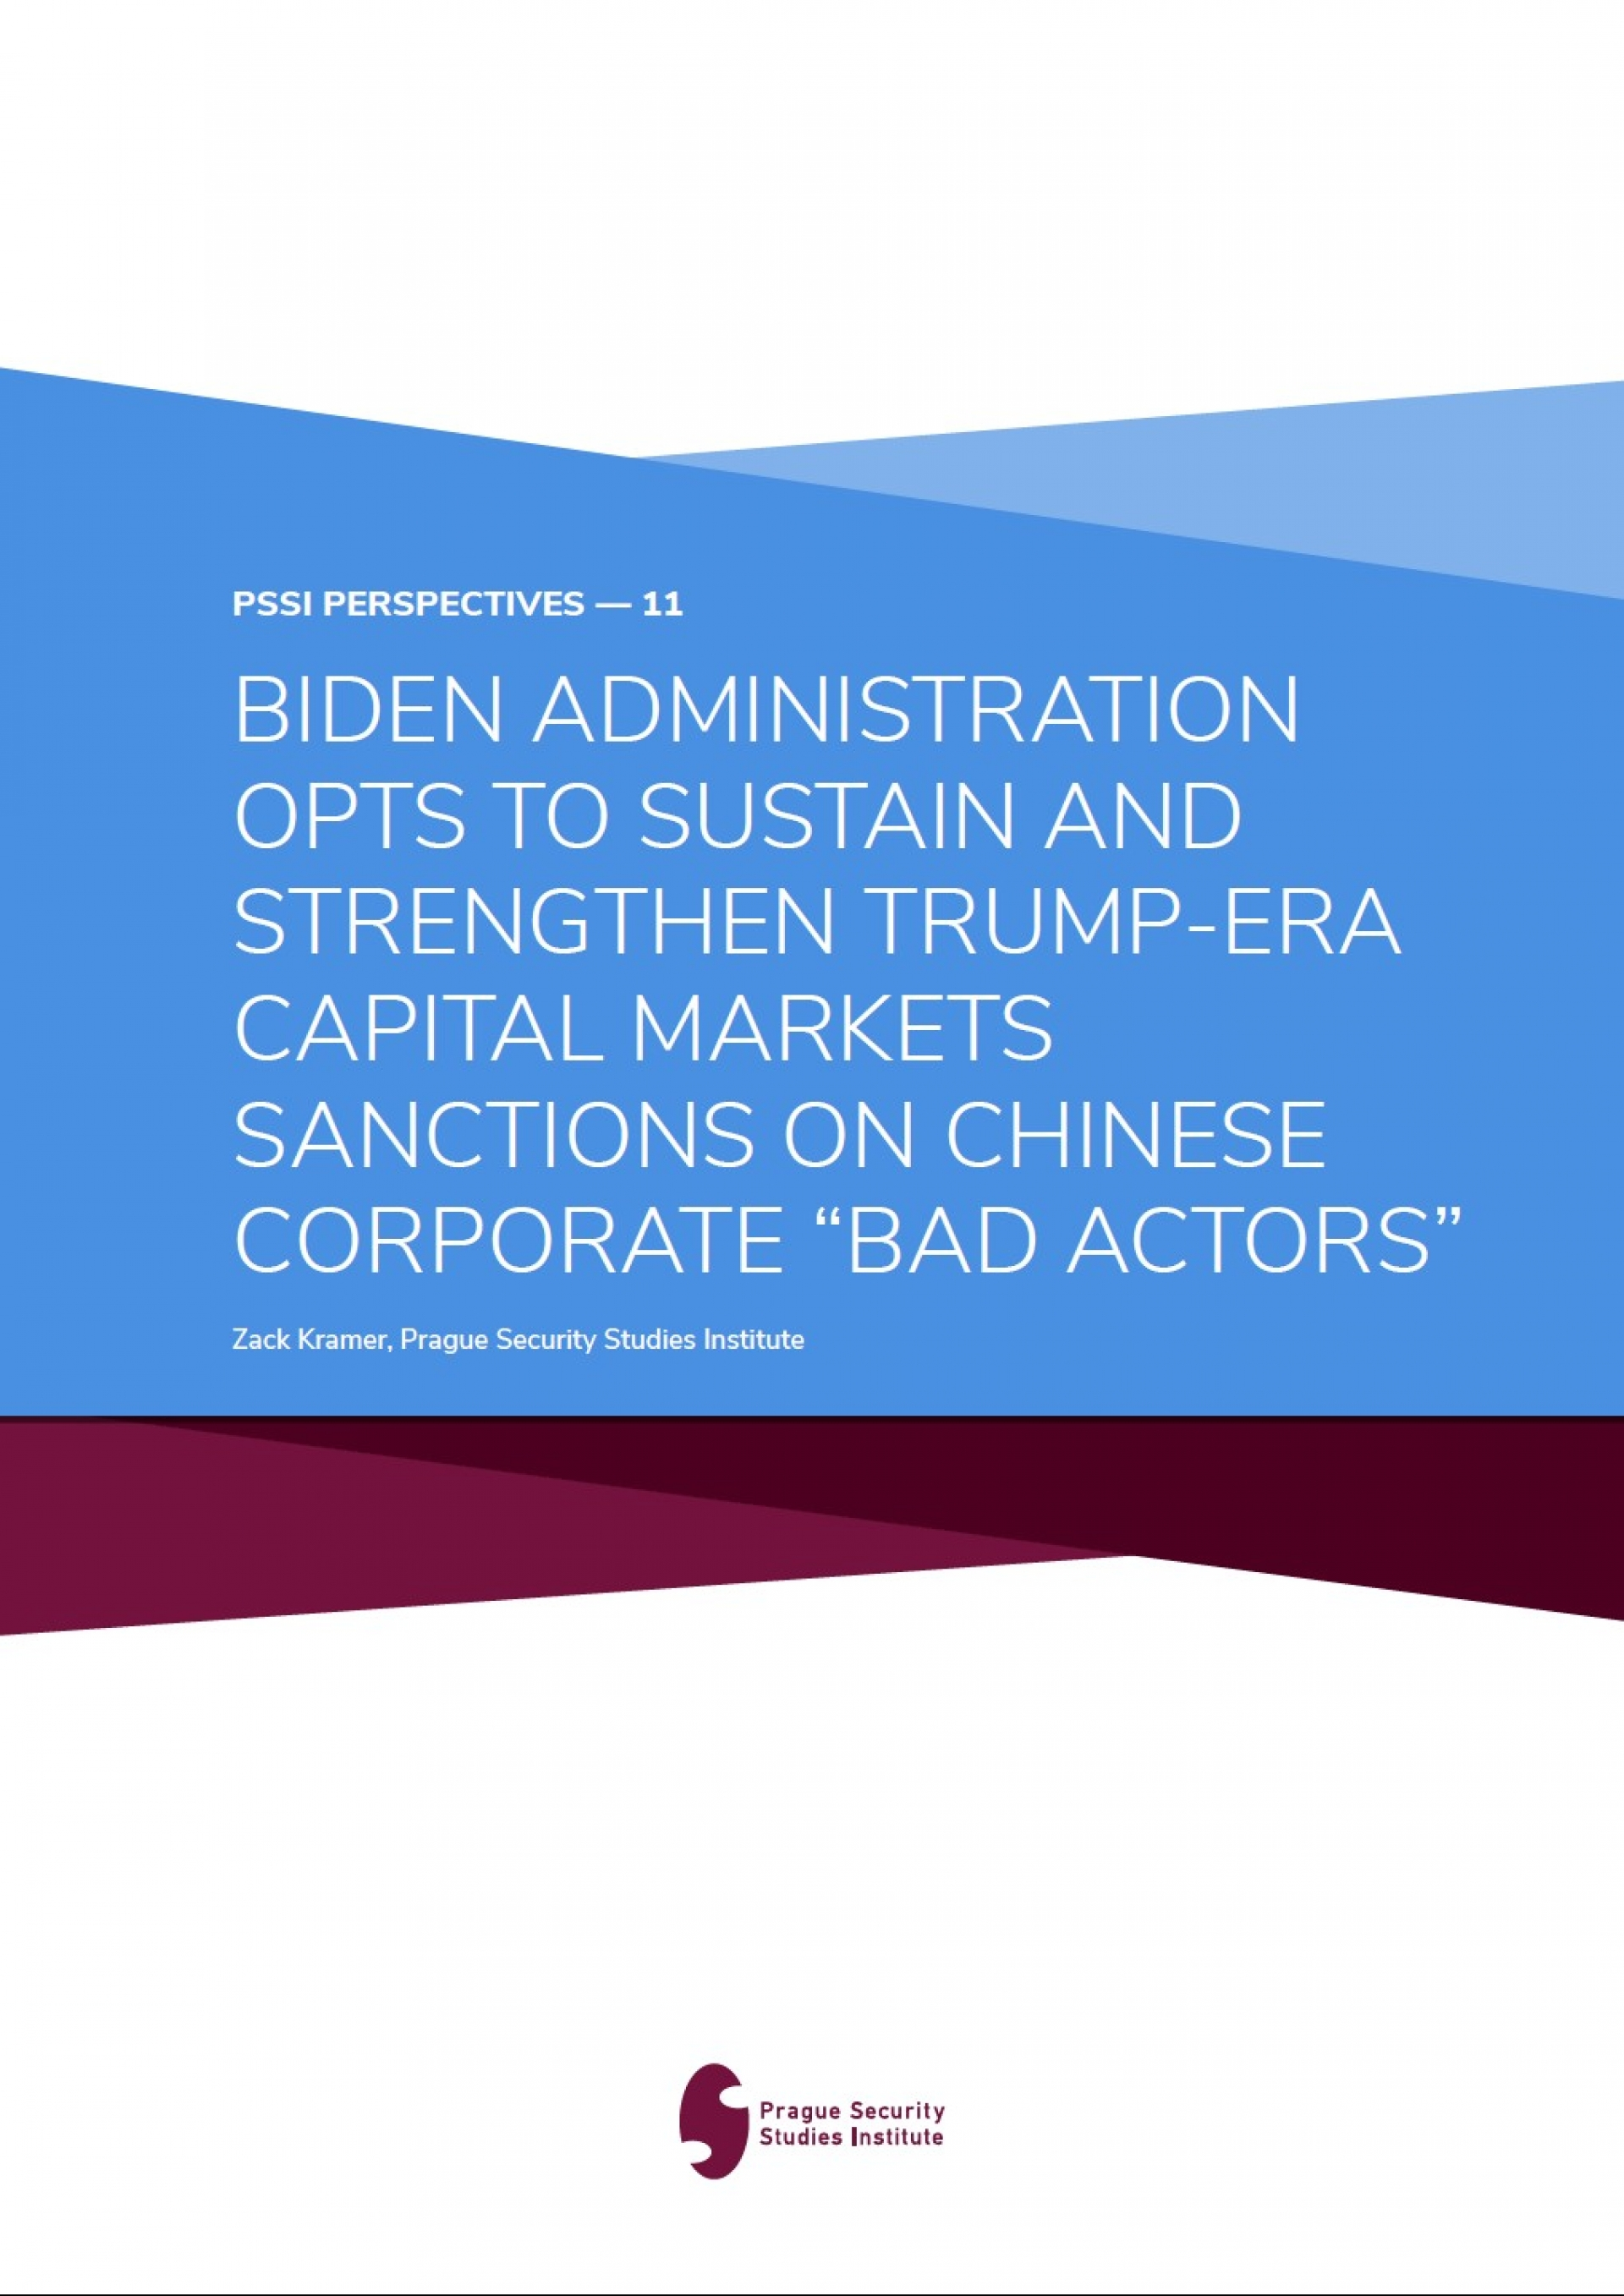 Biden Administration Opts To Sustain and Strenghten Trump-era Capital Markets Sanctions on Chinese Corporate Bad Actors Cover Page